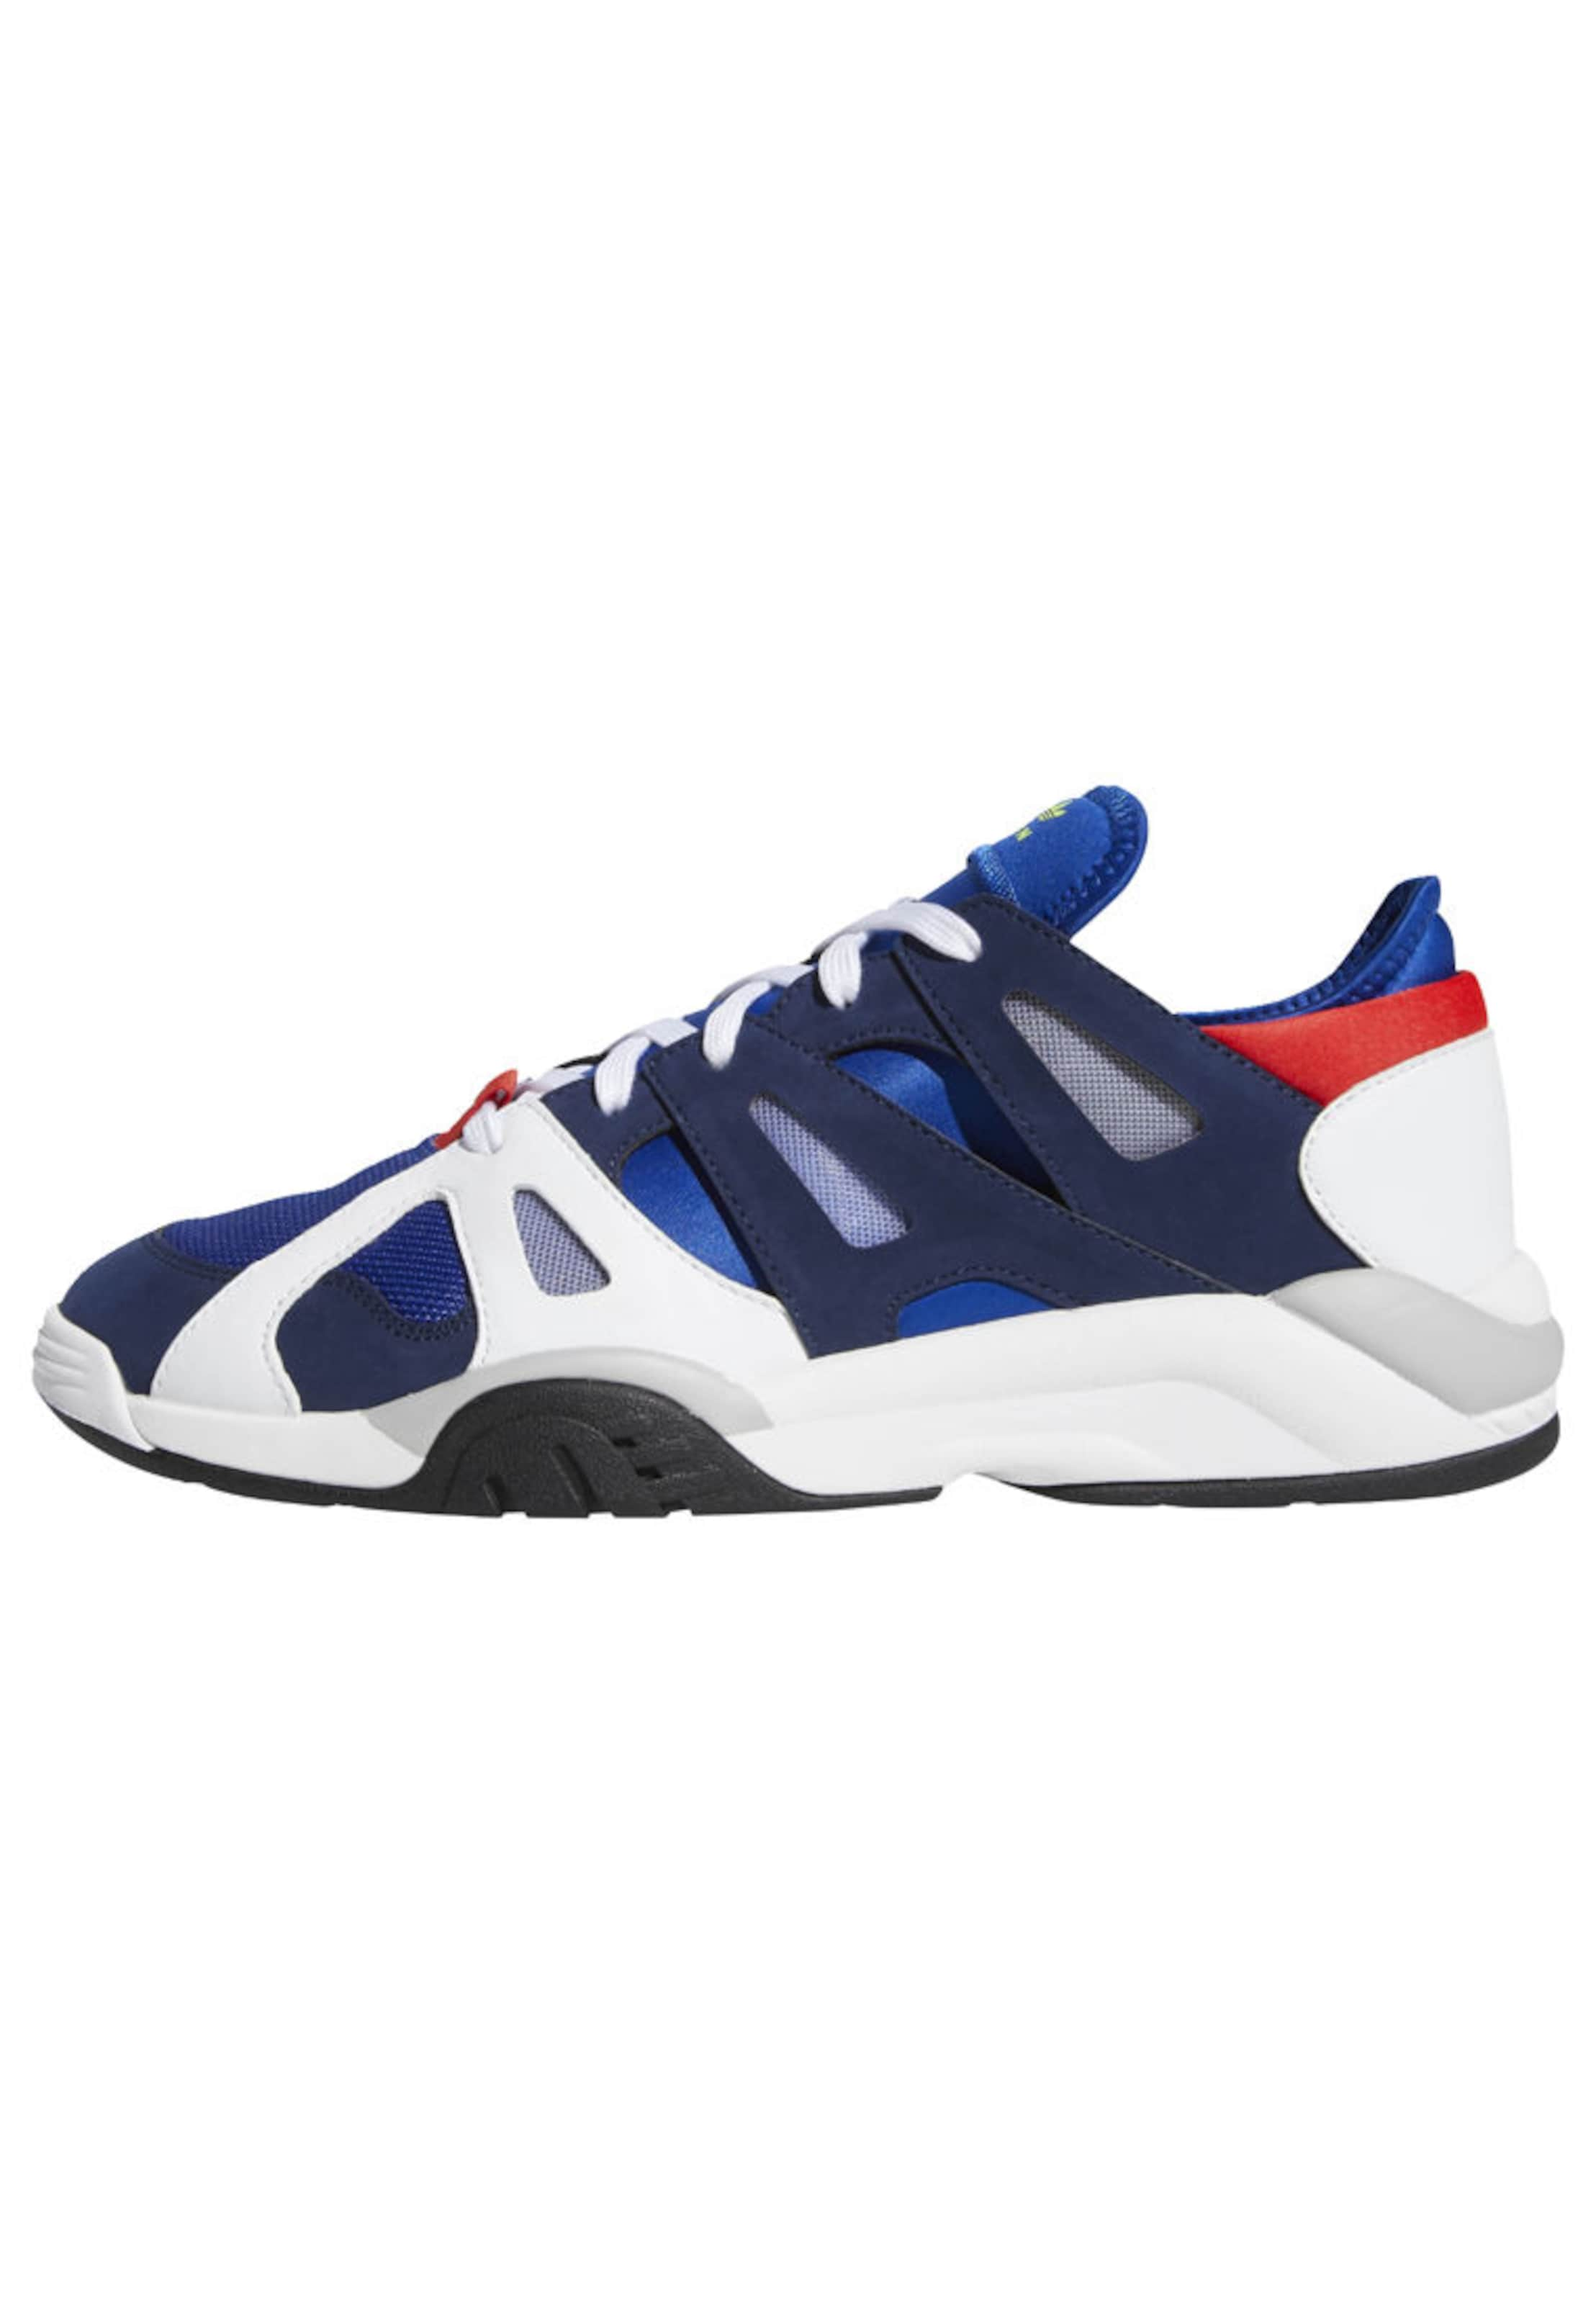 In Originals Adidas NavyWeiß Sneaker 'yung' dxtsQBohrC